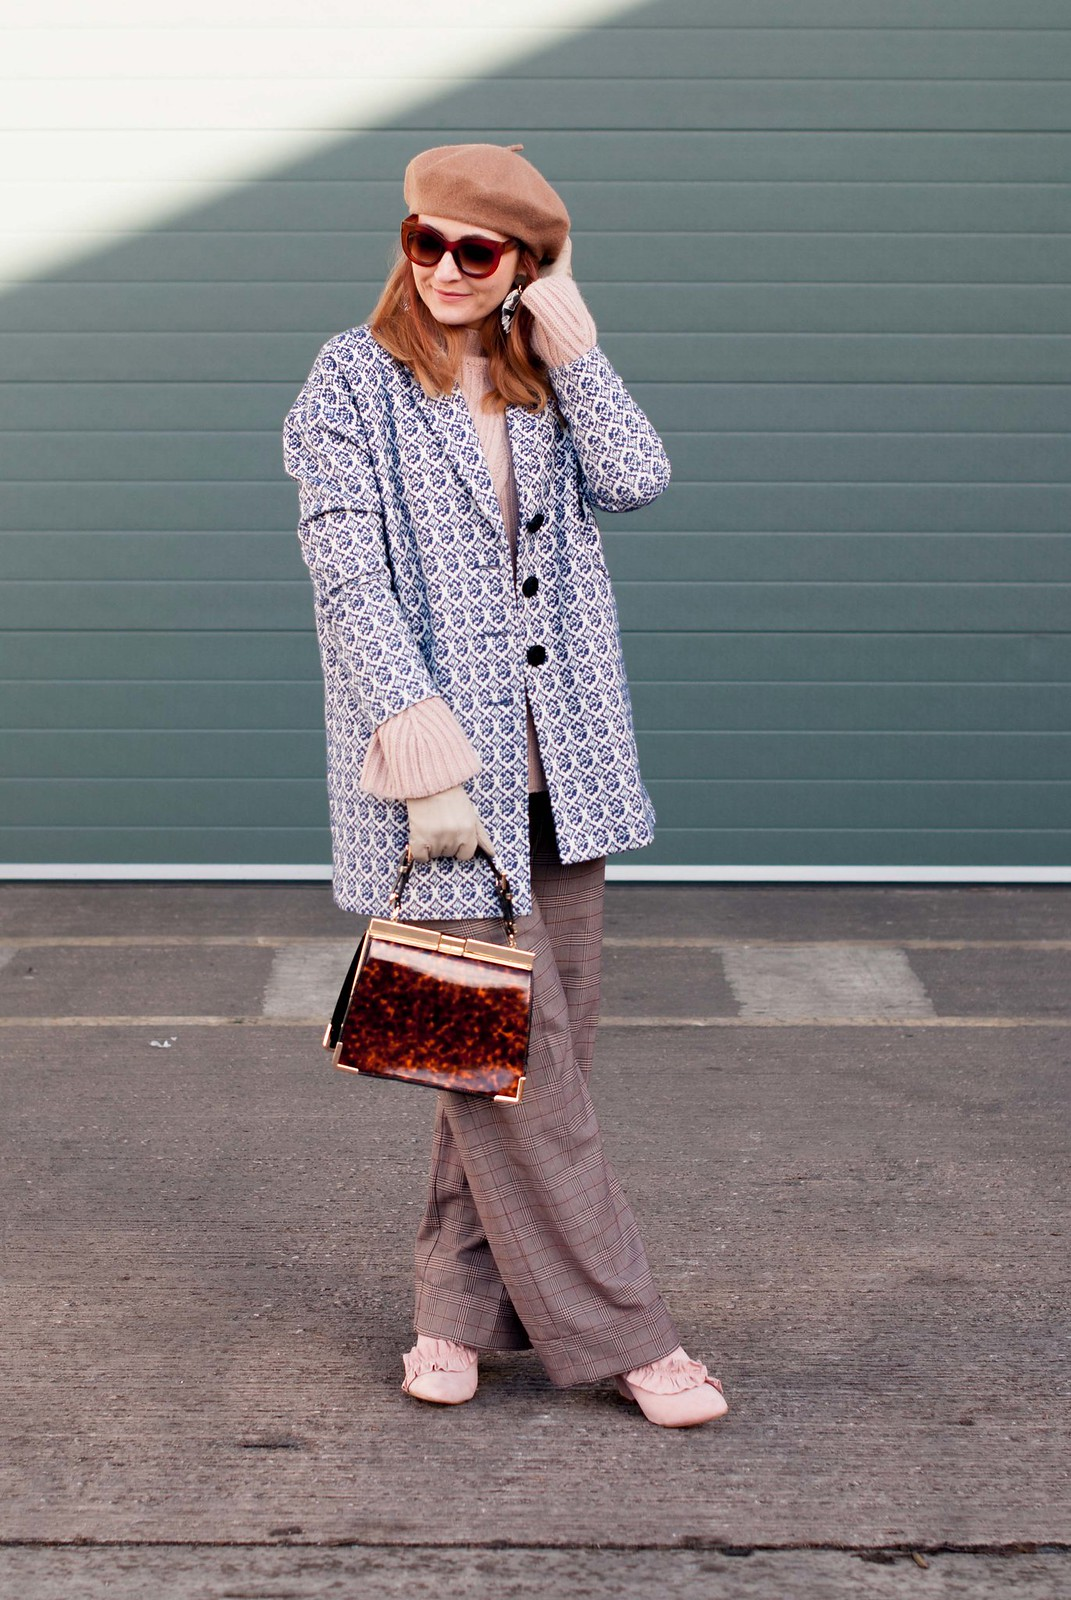 How to Wear Soft Tones of Blush and Blue in Winter \ blue tapestry coat, blush pink sweater, camel beret, check trousers, pink ruffle ankle boots | Not Dressed As Lamb, over 40 style